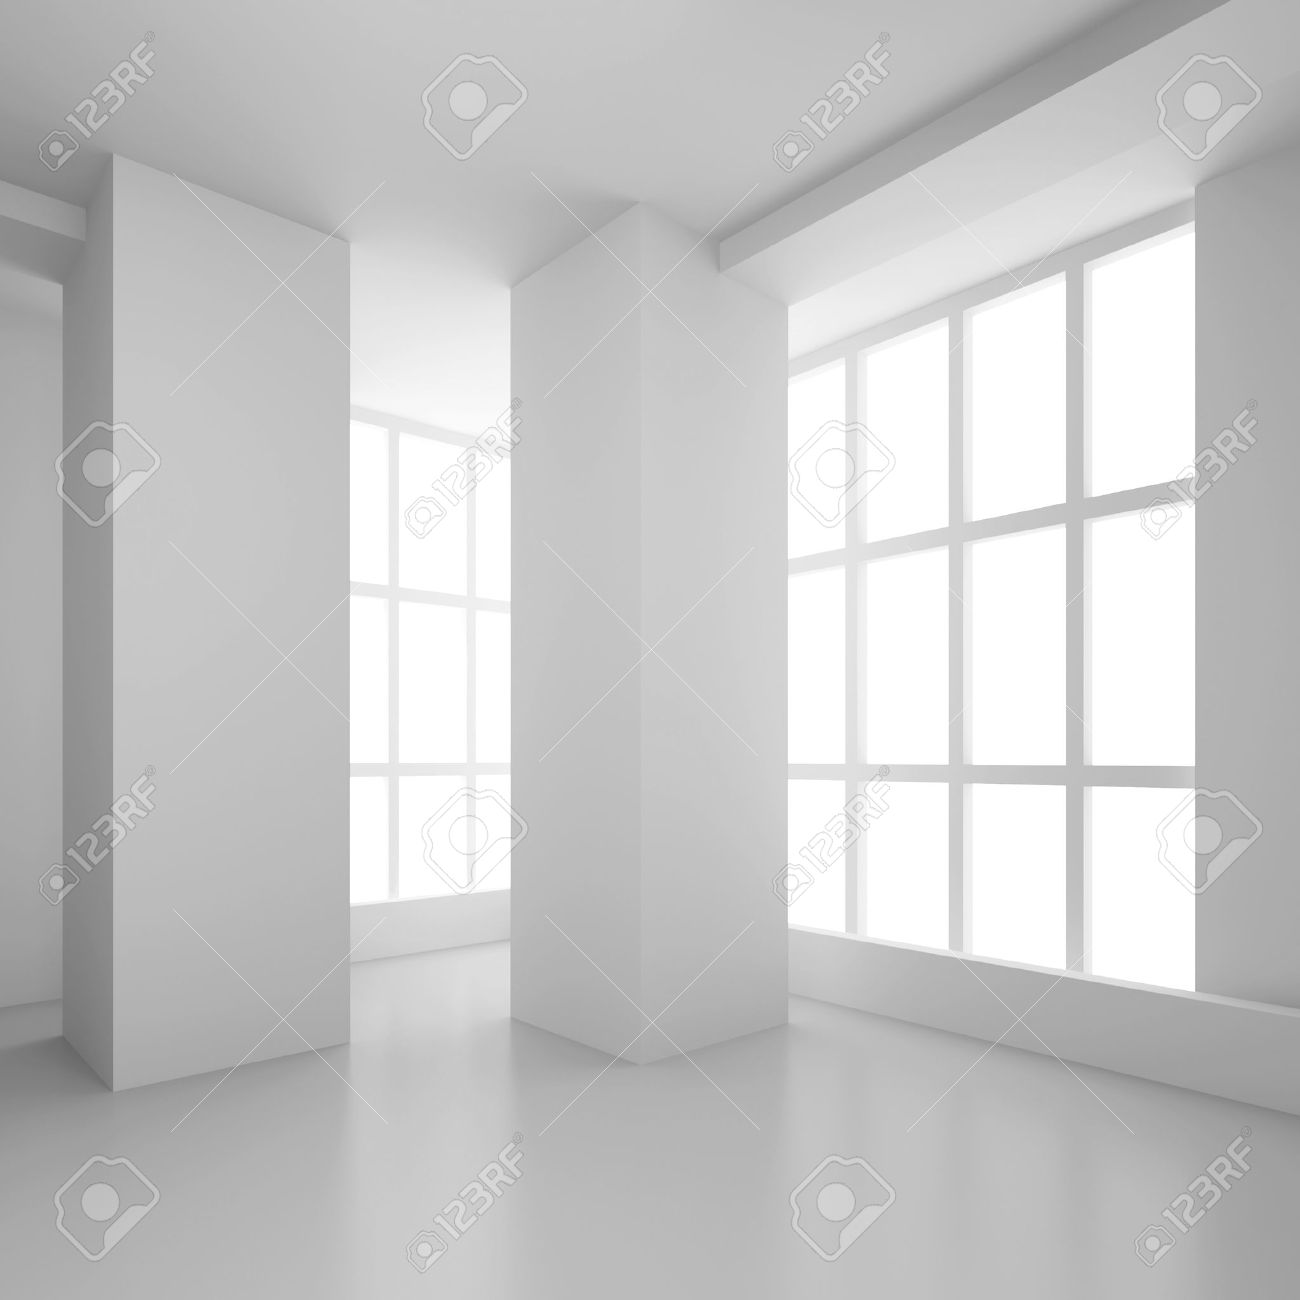 Empty Room Interior Stock Photo - 16067831